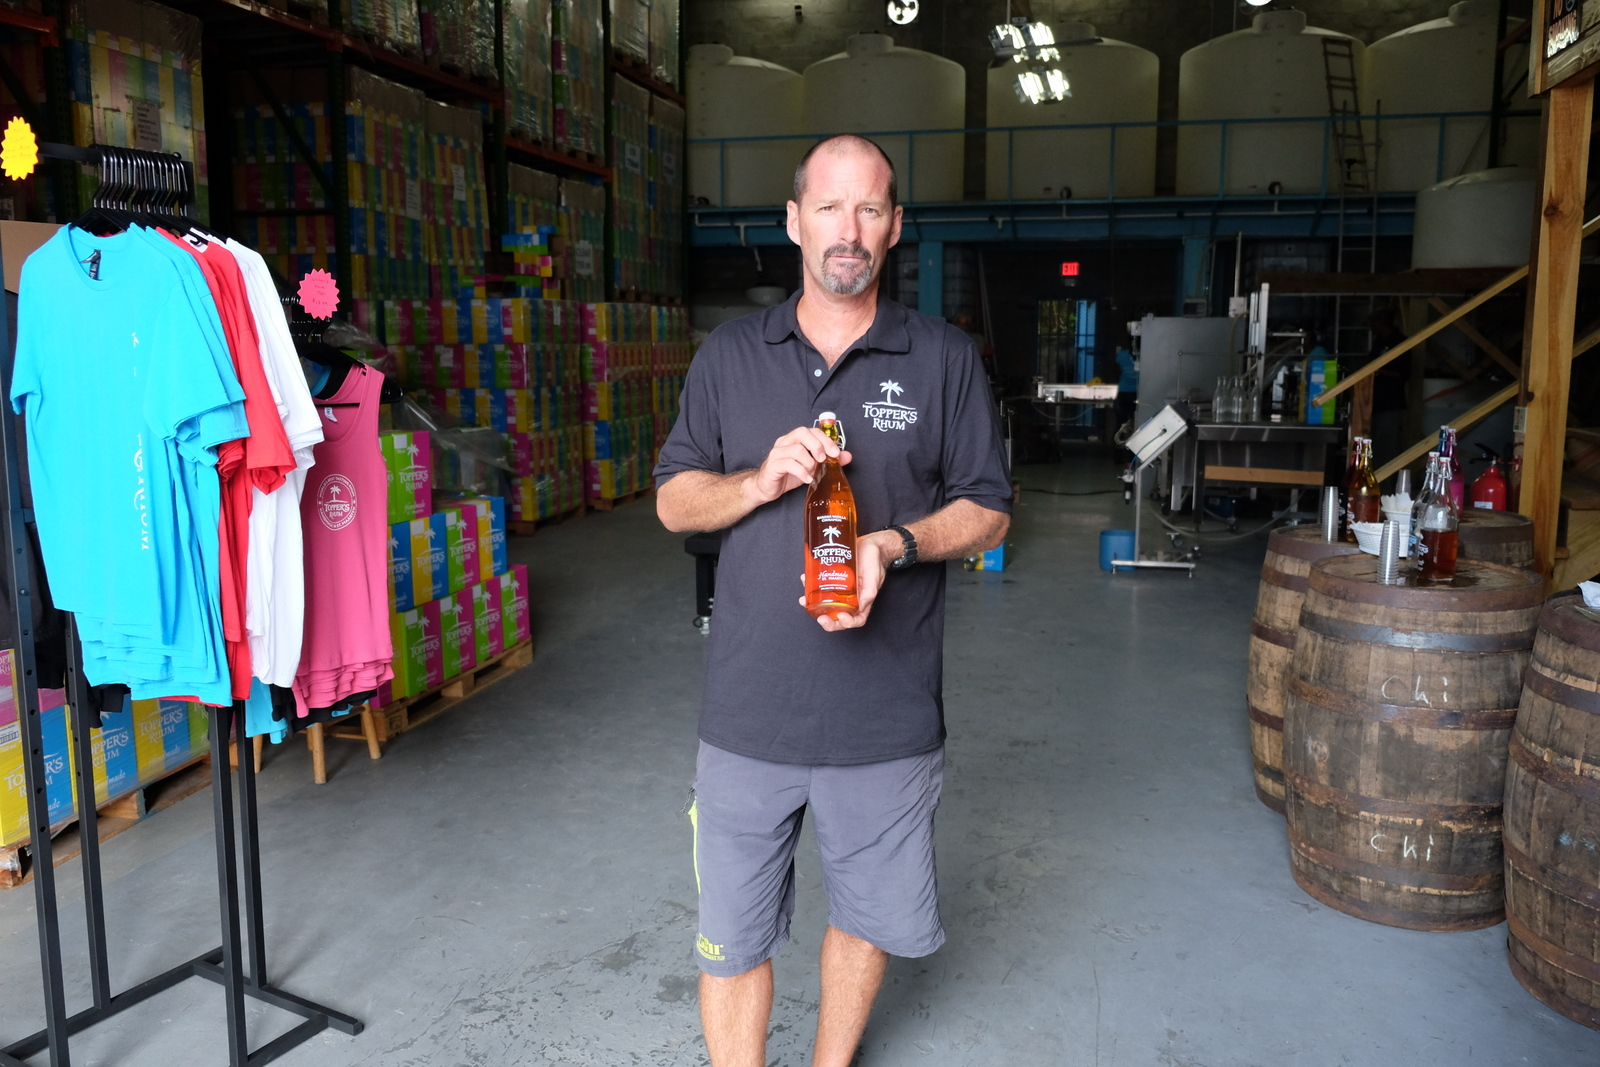 Dave Herbert grew up in Toronto and Montreal and now wears shorts to work in St. Maarten making Topper's Rhum. Hmmm.... - JIM BYERS PHOTO